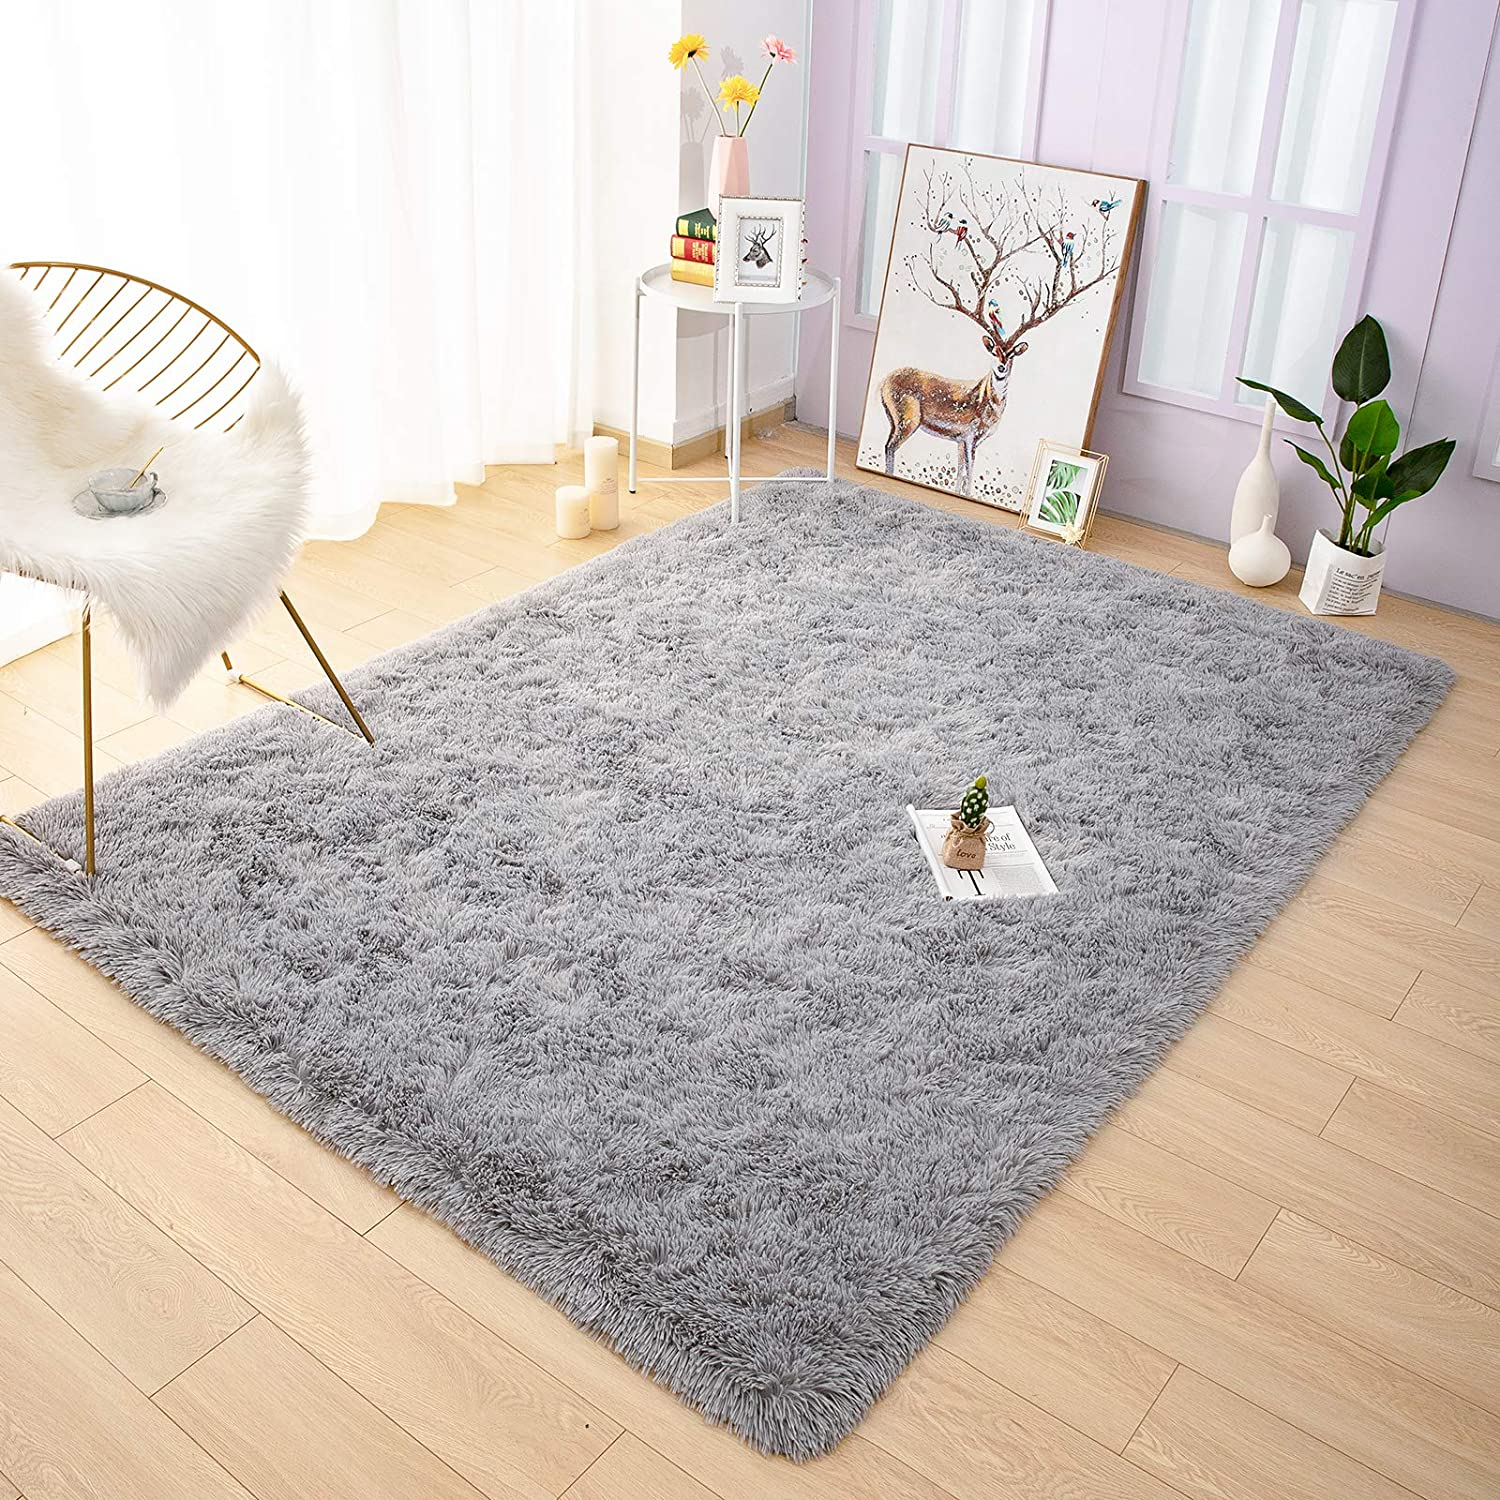 Amazon Com Yoh Fuzzy Soft Modern Shaggy Area Rugs Non Slip Plush Fluffy Bedroom Furry Fur Rugs Indoor Comfy Accent Floor Carpet For Dorm Living Nursery Kids Girls Room Home Decor 5 X 8